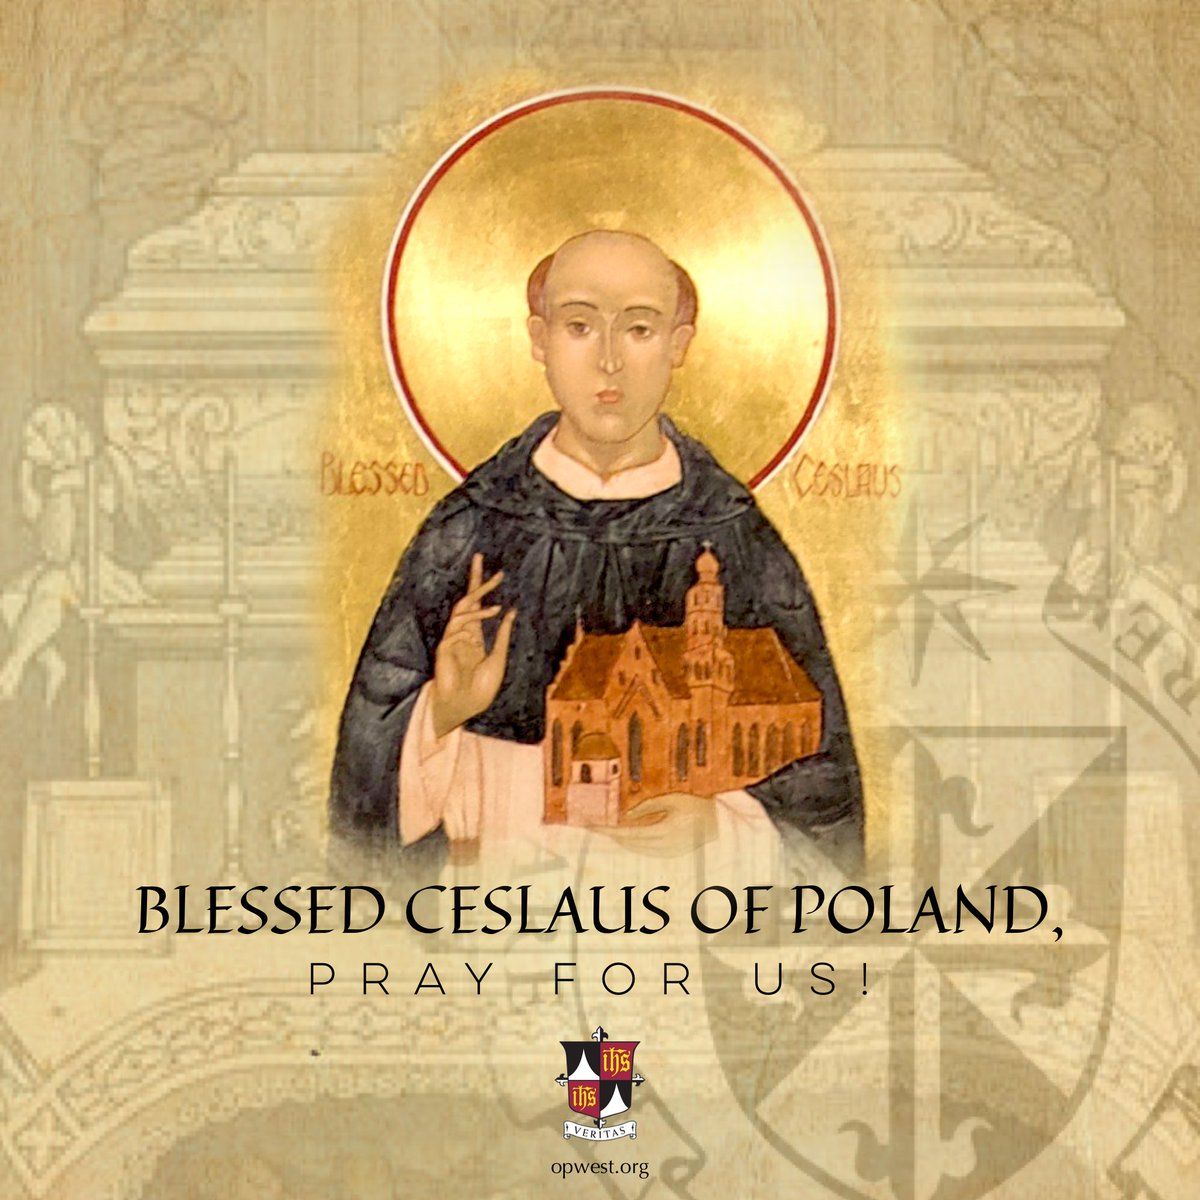 #BlCeslaus, OP (1180-1242) was born in Silesia to a noble family. Ordained a priest, he went to Rome in 1221 and met St Dominic who received him and St Hyacinth into the Order. He evangelized Eastern Europe, performed many miracles and helped establish the Province of Poland.